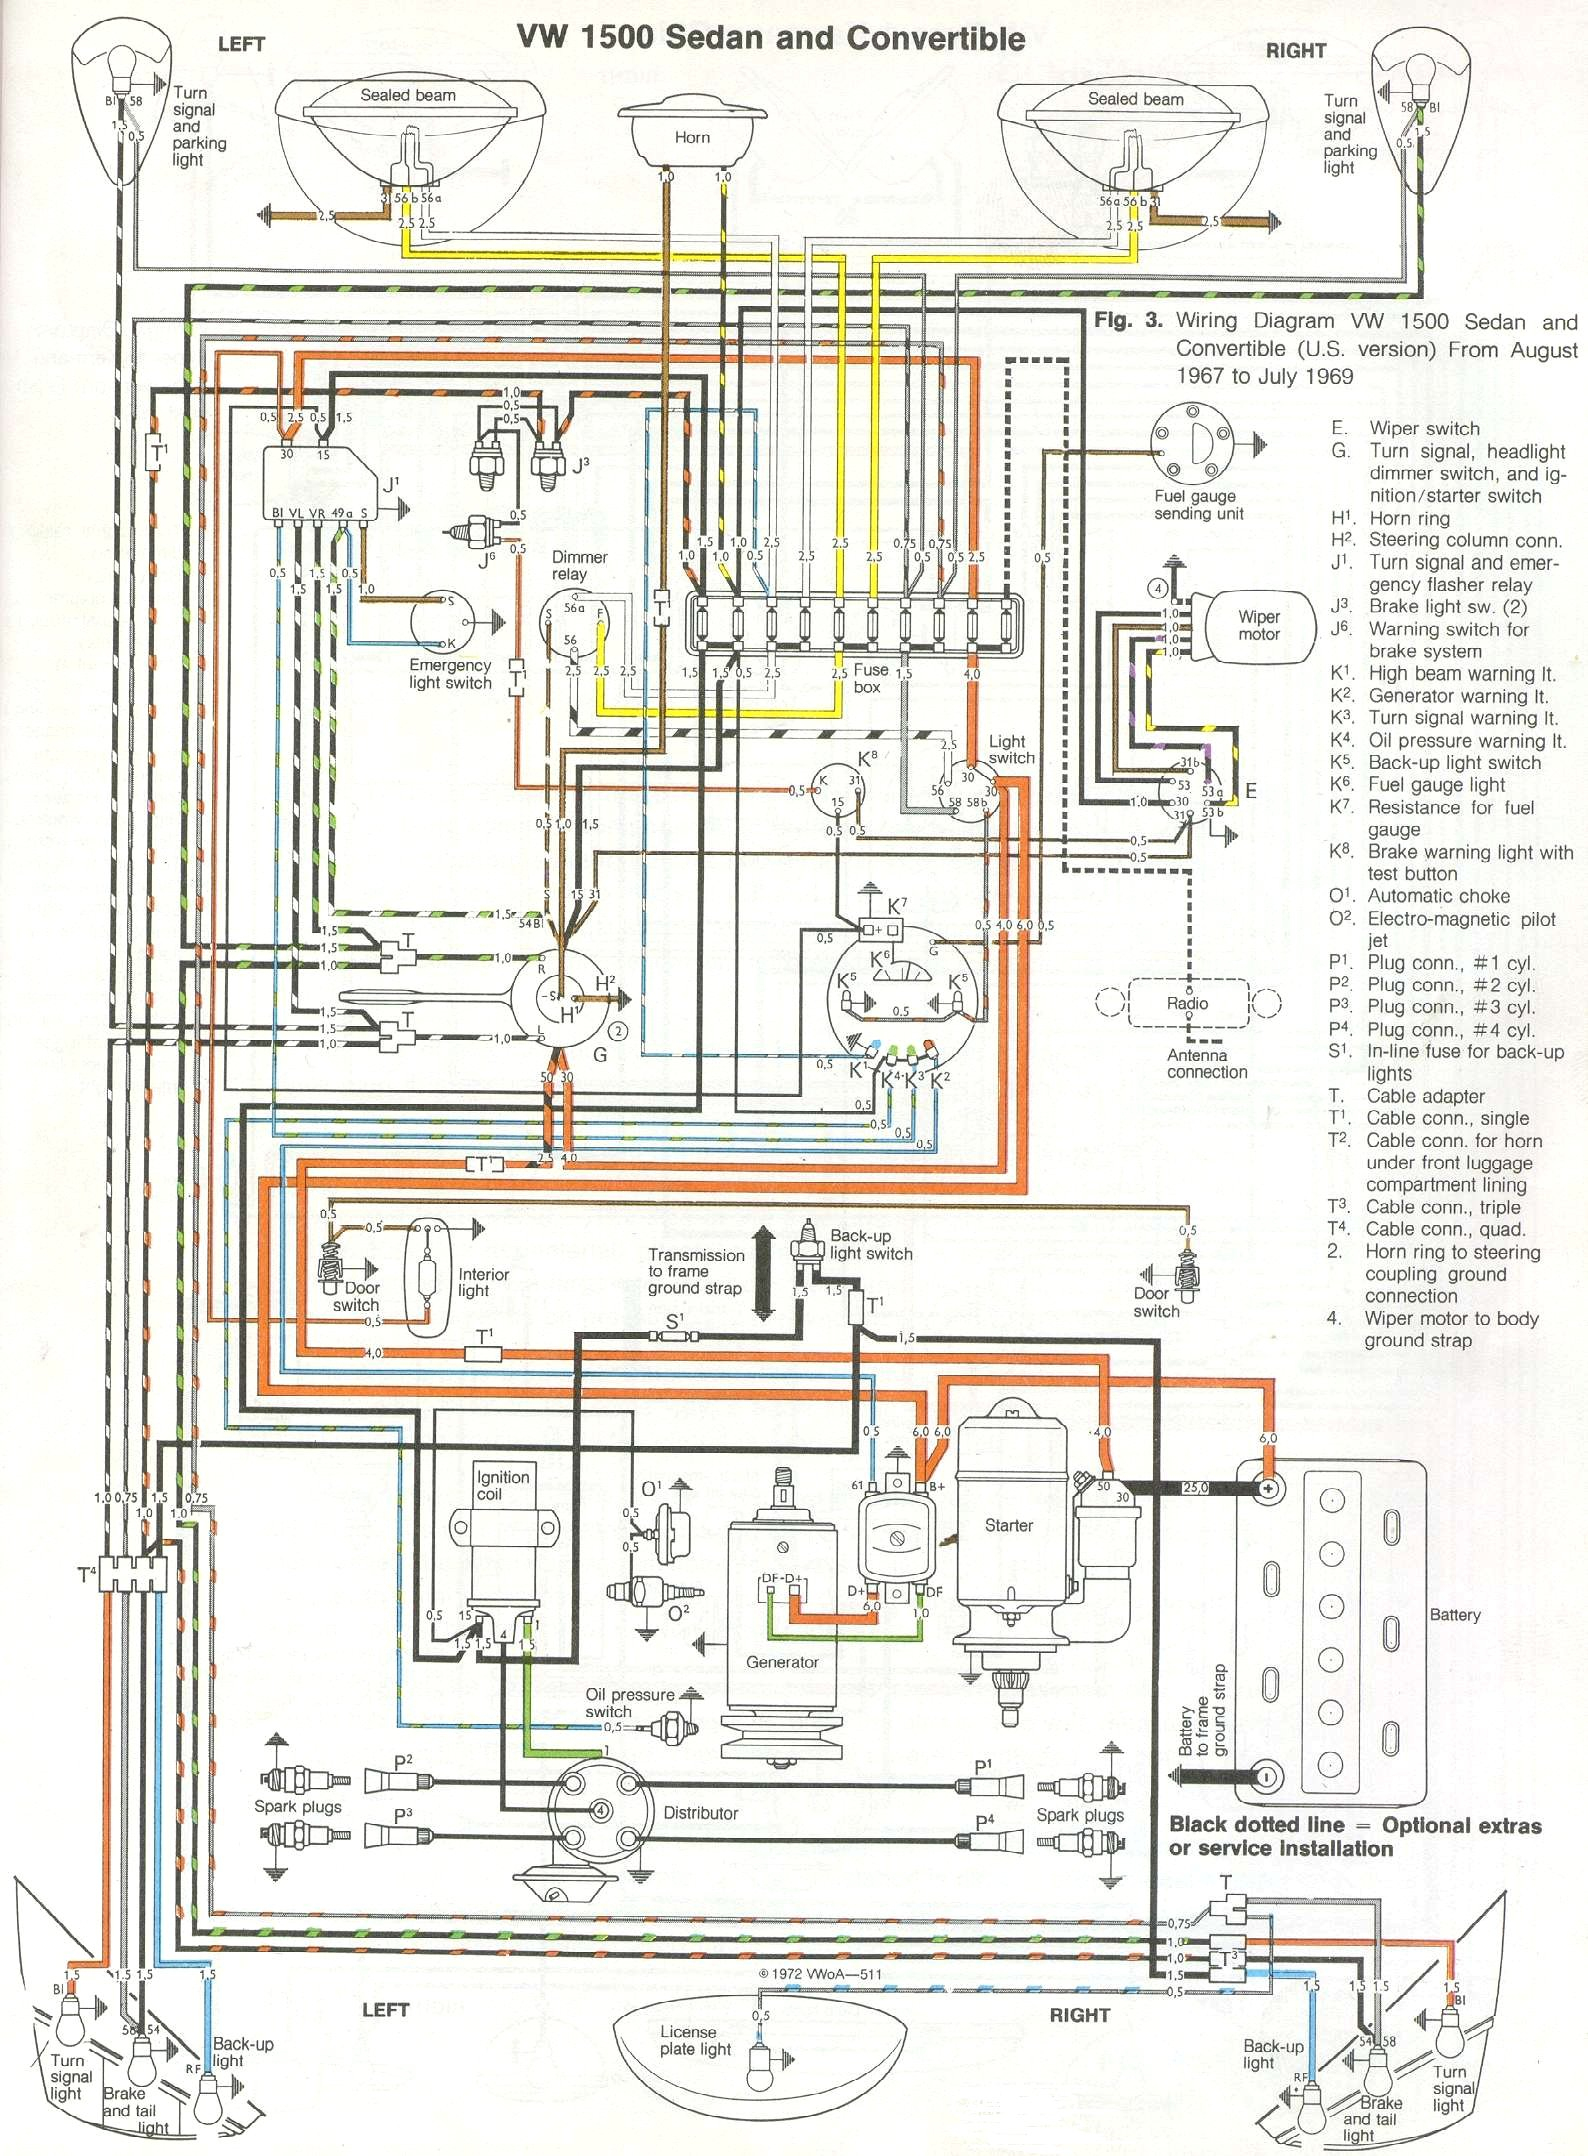 1969-71 Beetle Wiring Diagram | Thegoldenbug - Vw Wiring Diagram